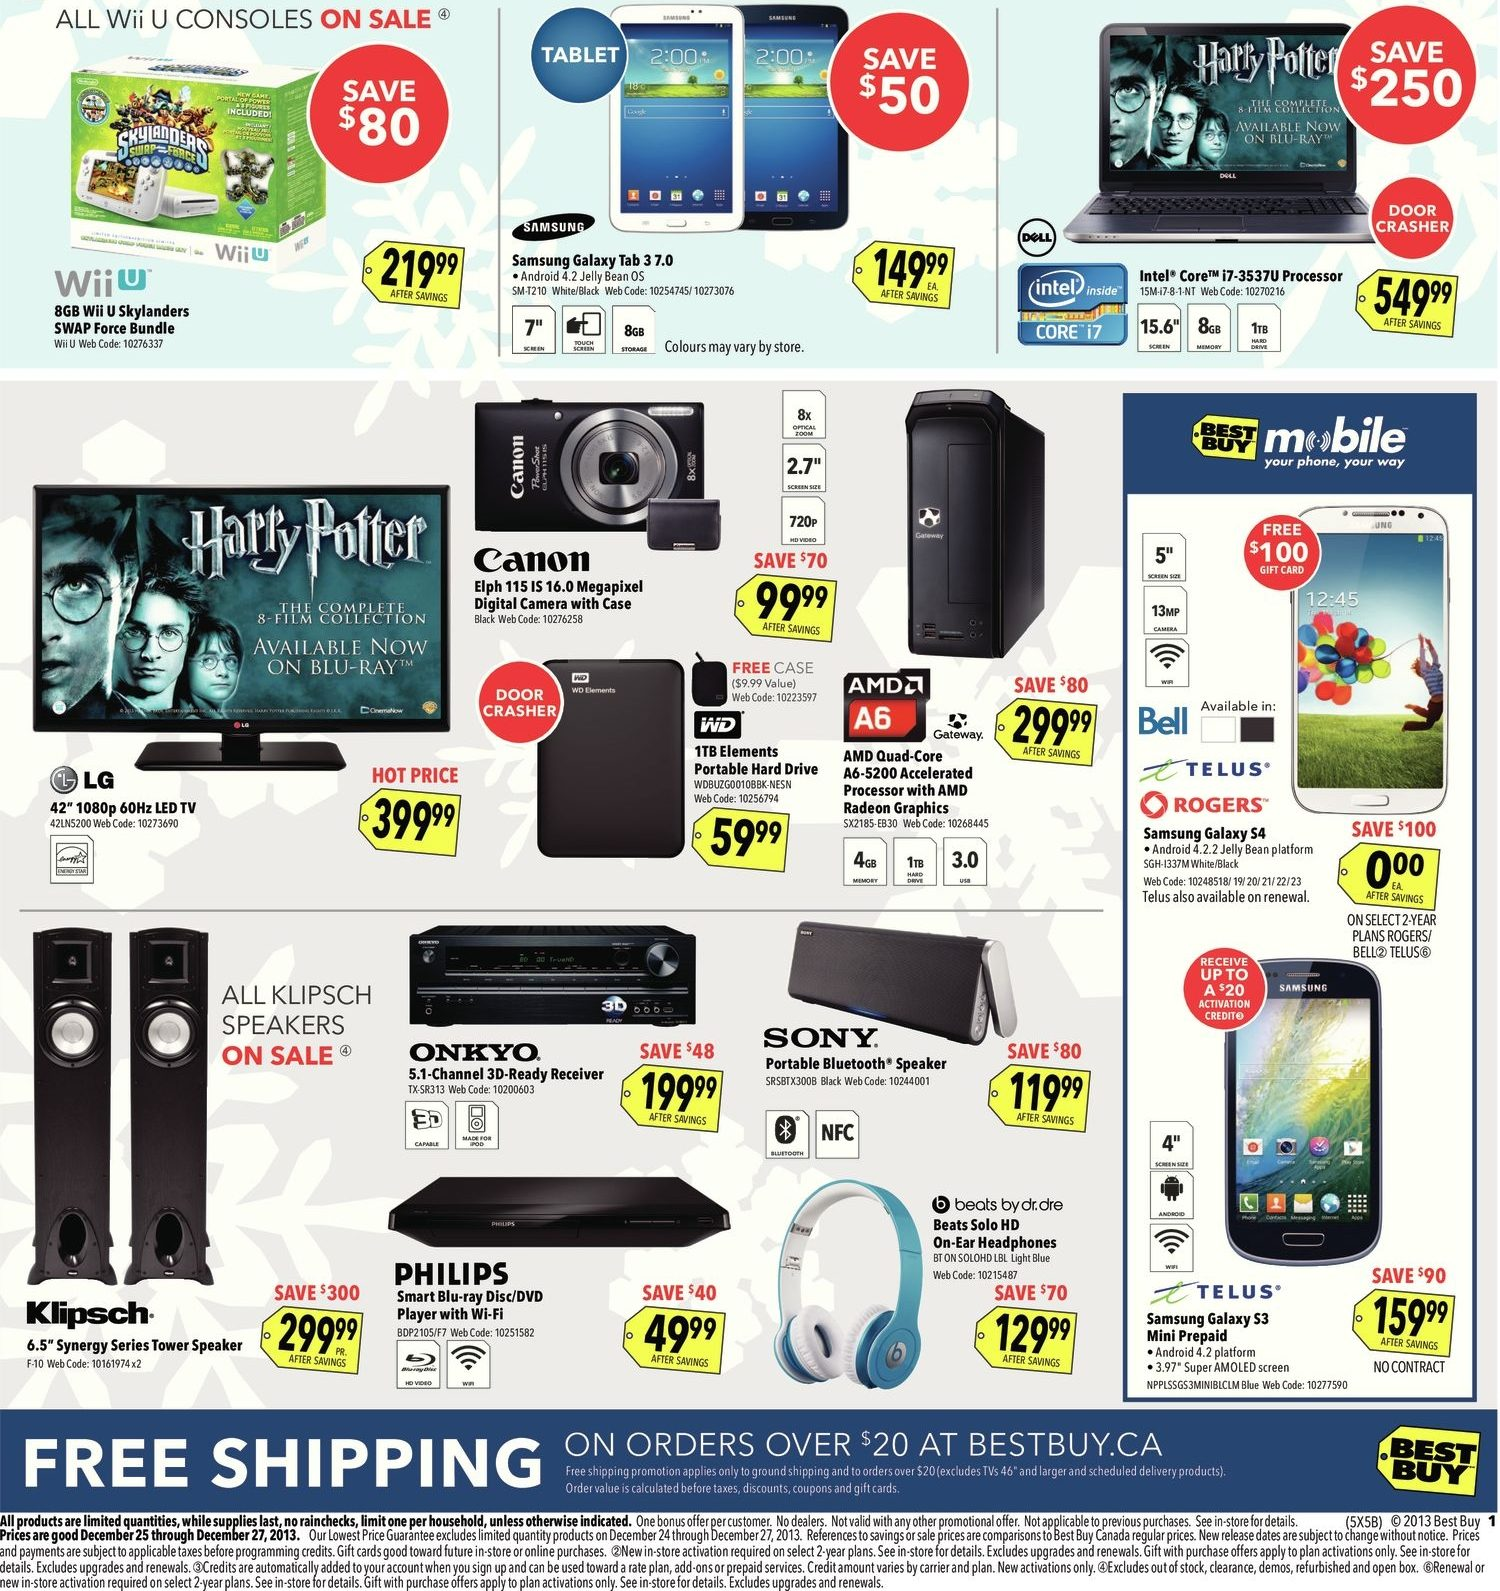 Best Buy Weekly Flyer Boxing Day Sale Dec 25 27 Moouse Toshiba Kw